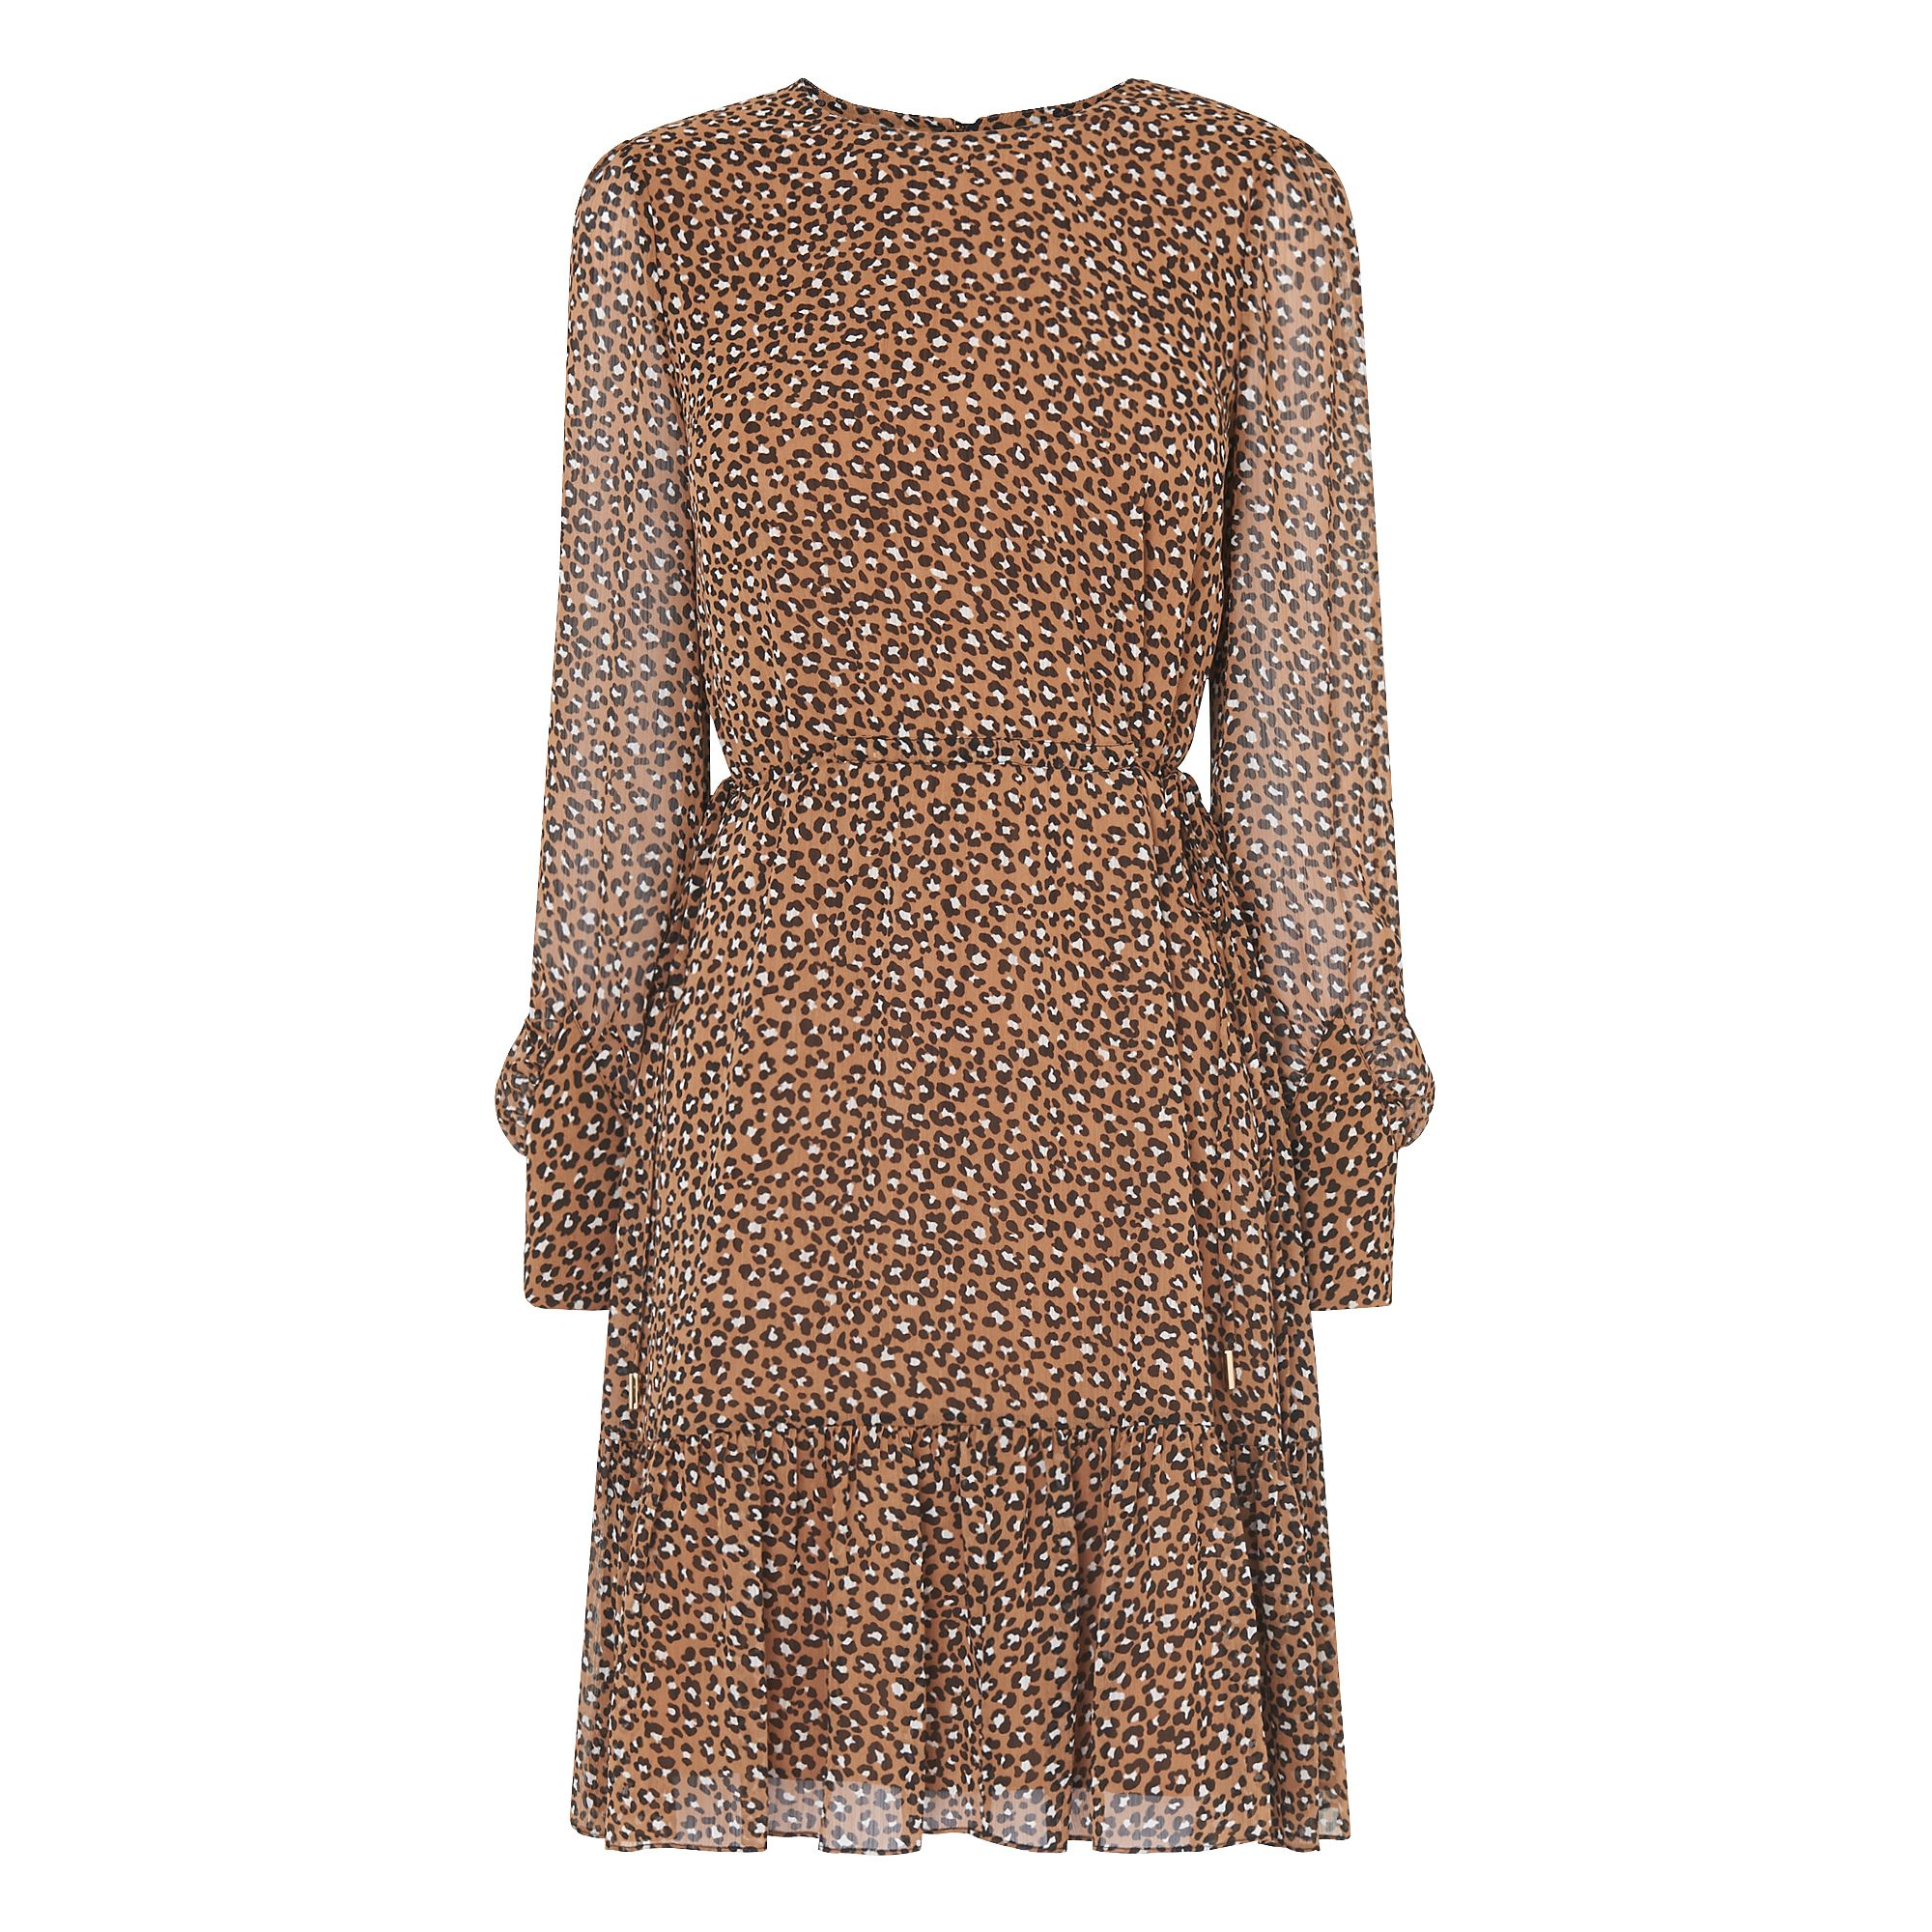 L.K. Bennett Dakota Animal Print Dress, Multi-Coloured